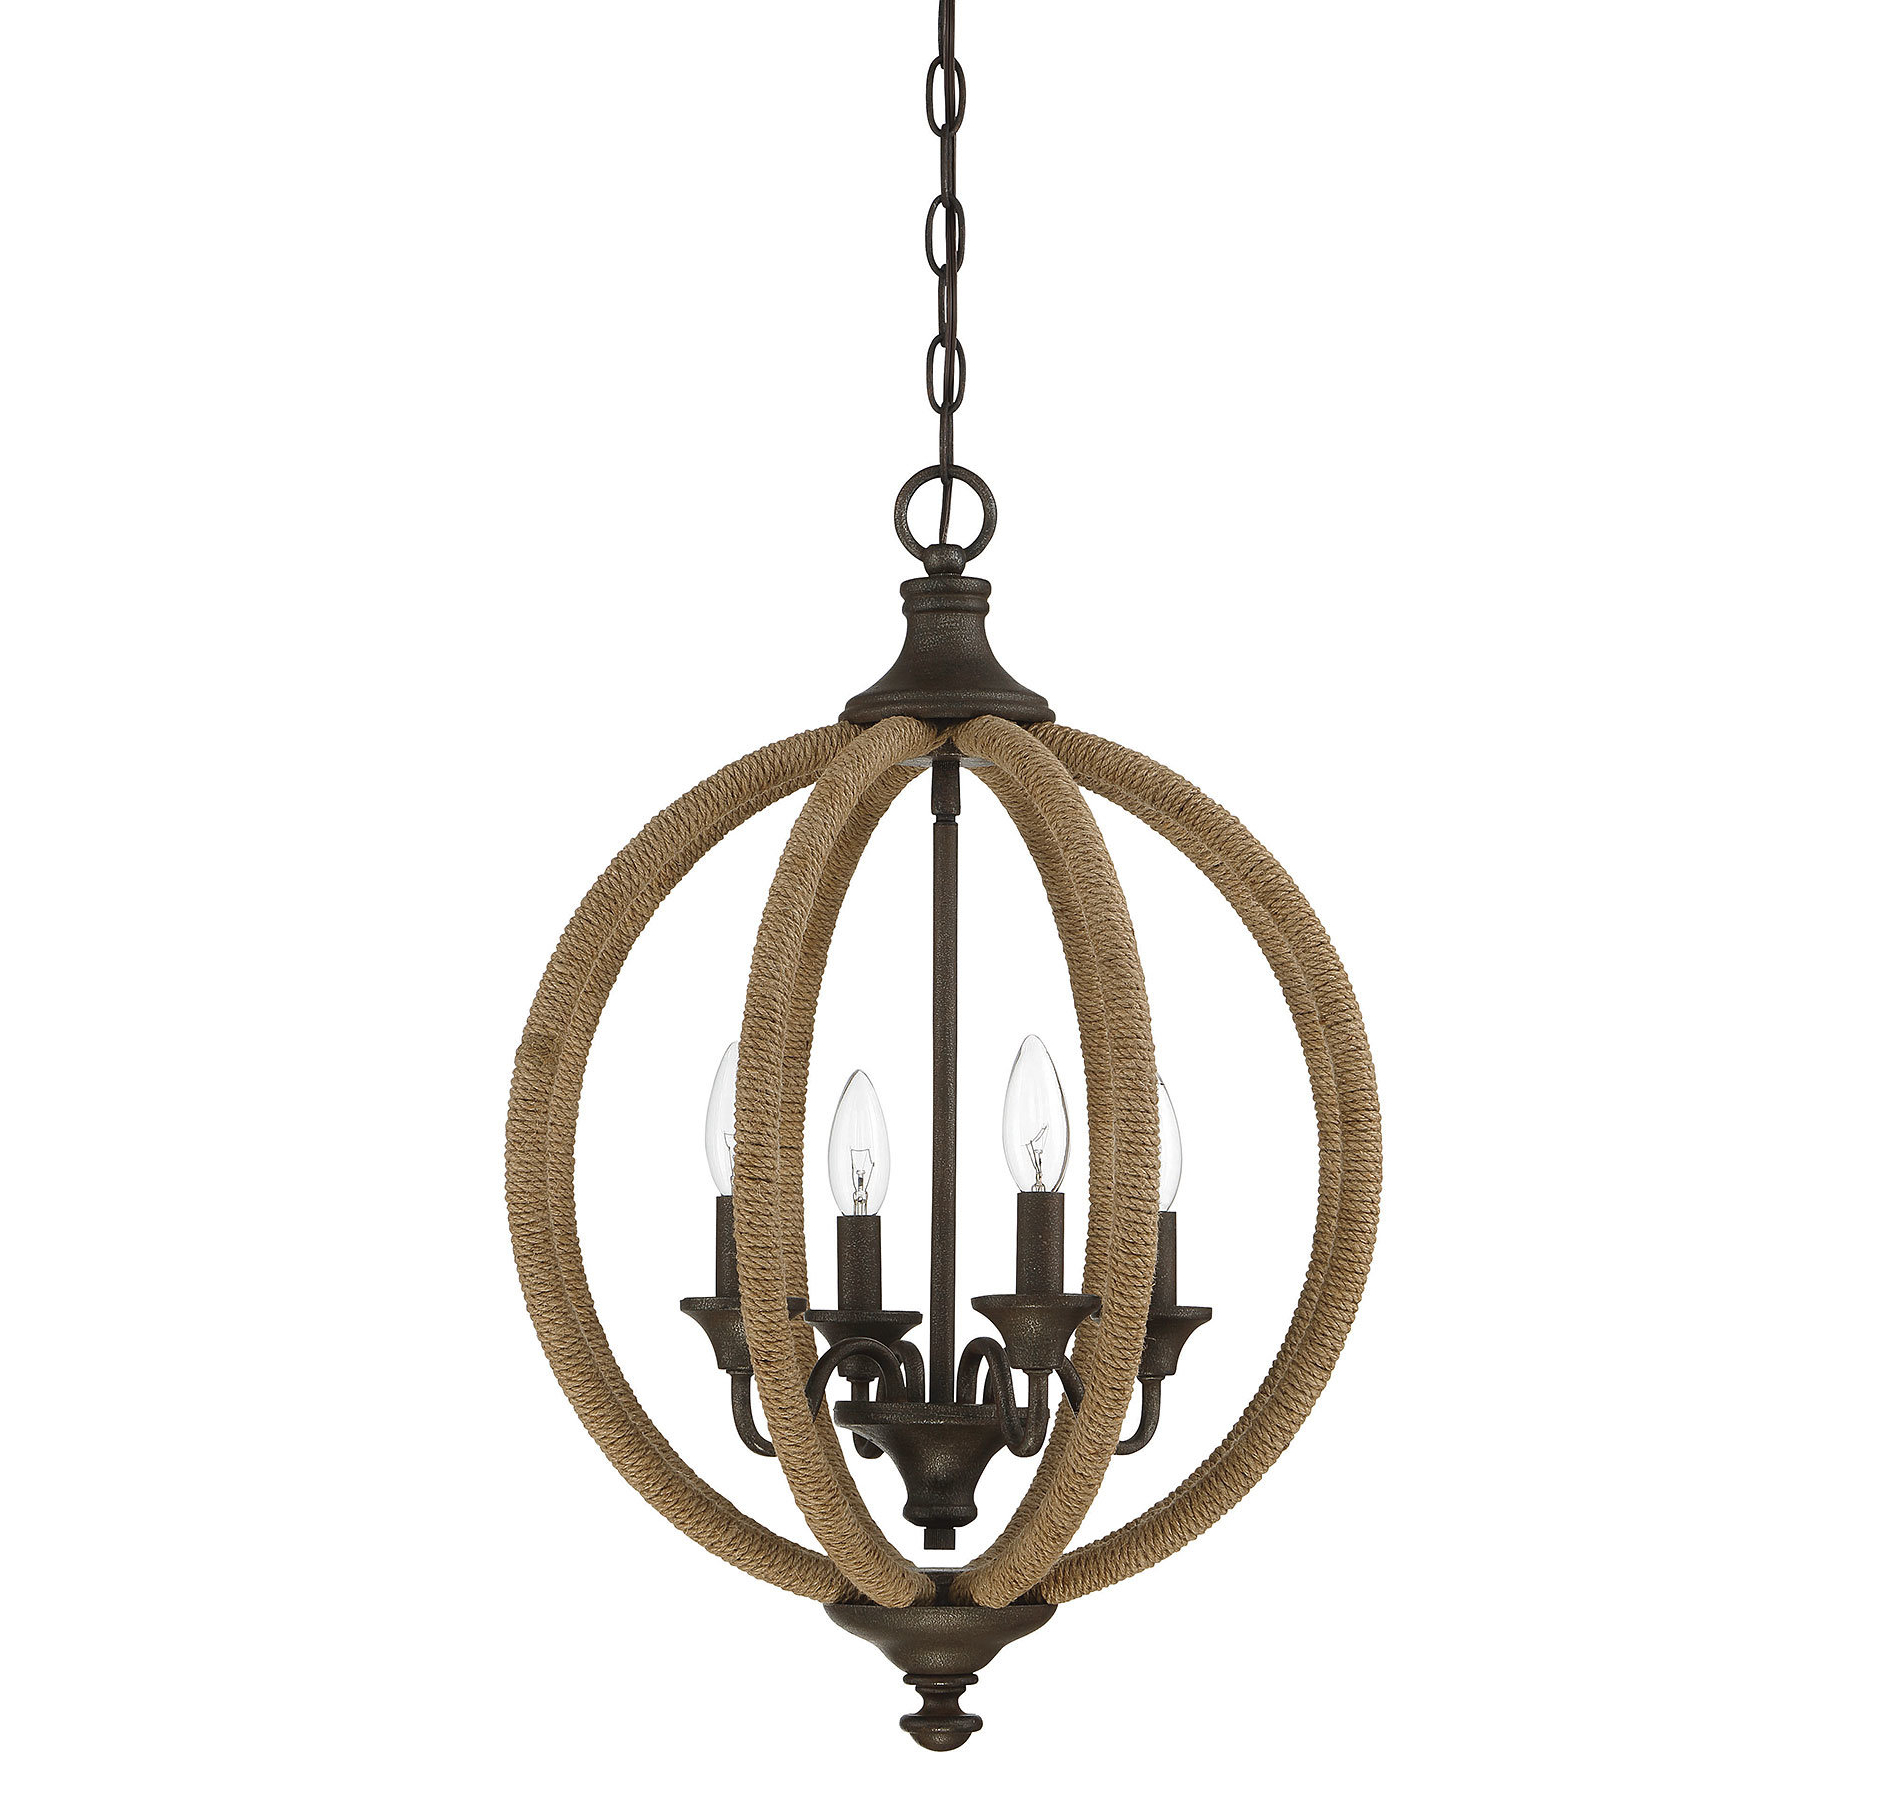 2019 Lynda 4 Light Globe Chandelier With Regard To Donna 4 Light Globe Chandeliers (View 1 of 20)